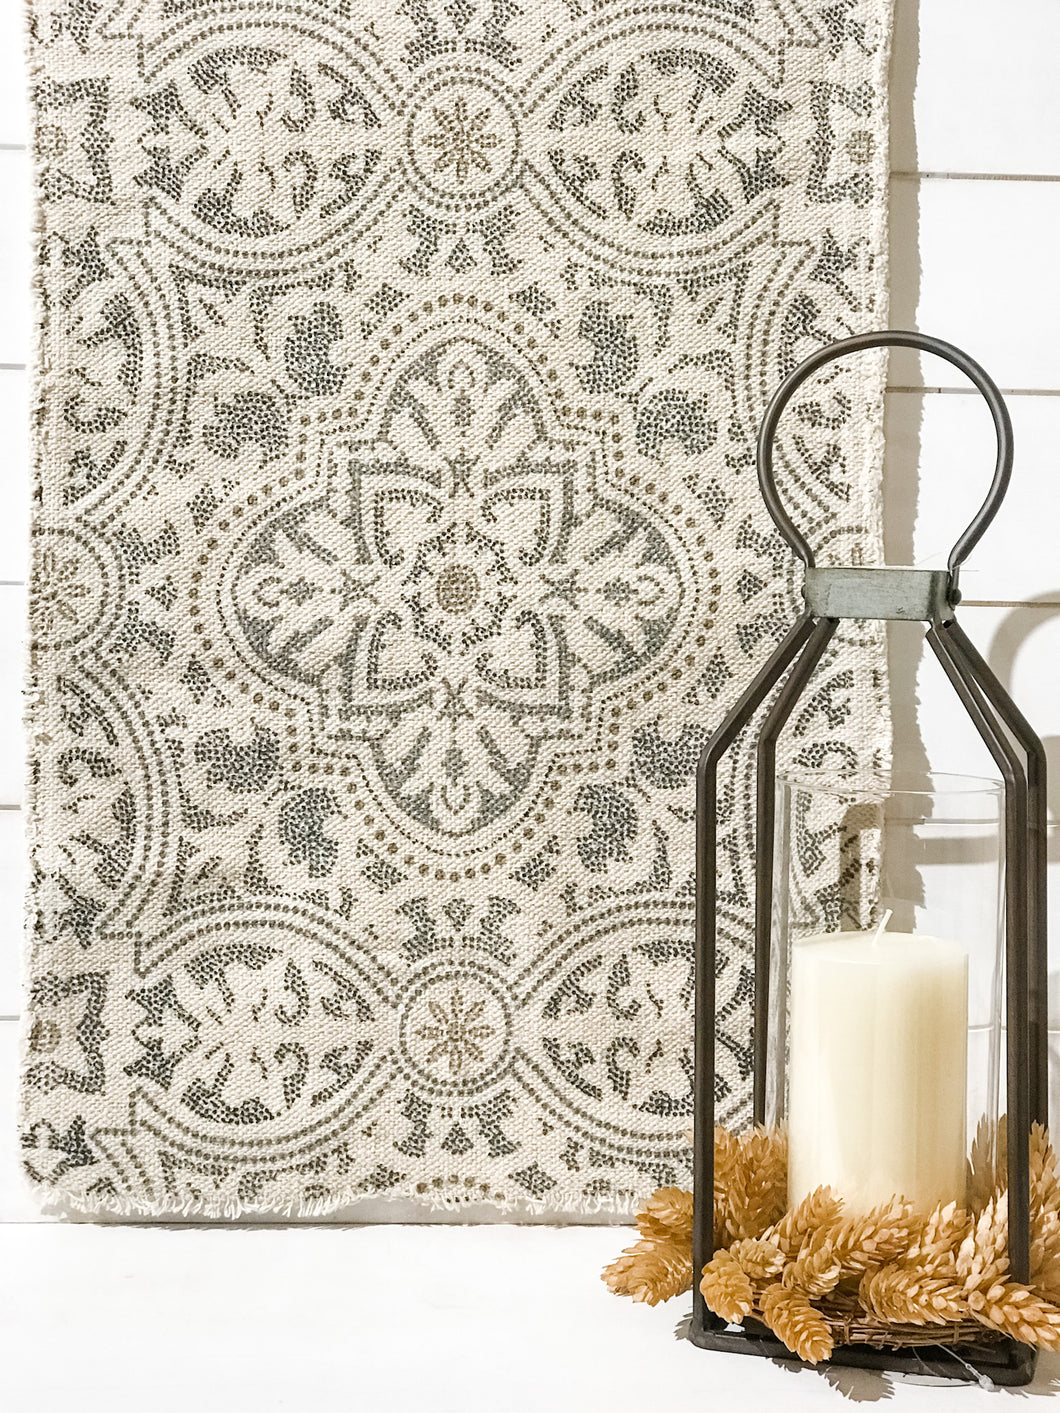 Cotton Printed Table Runner With Fringe